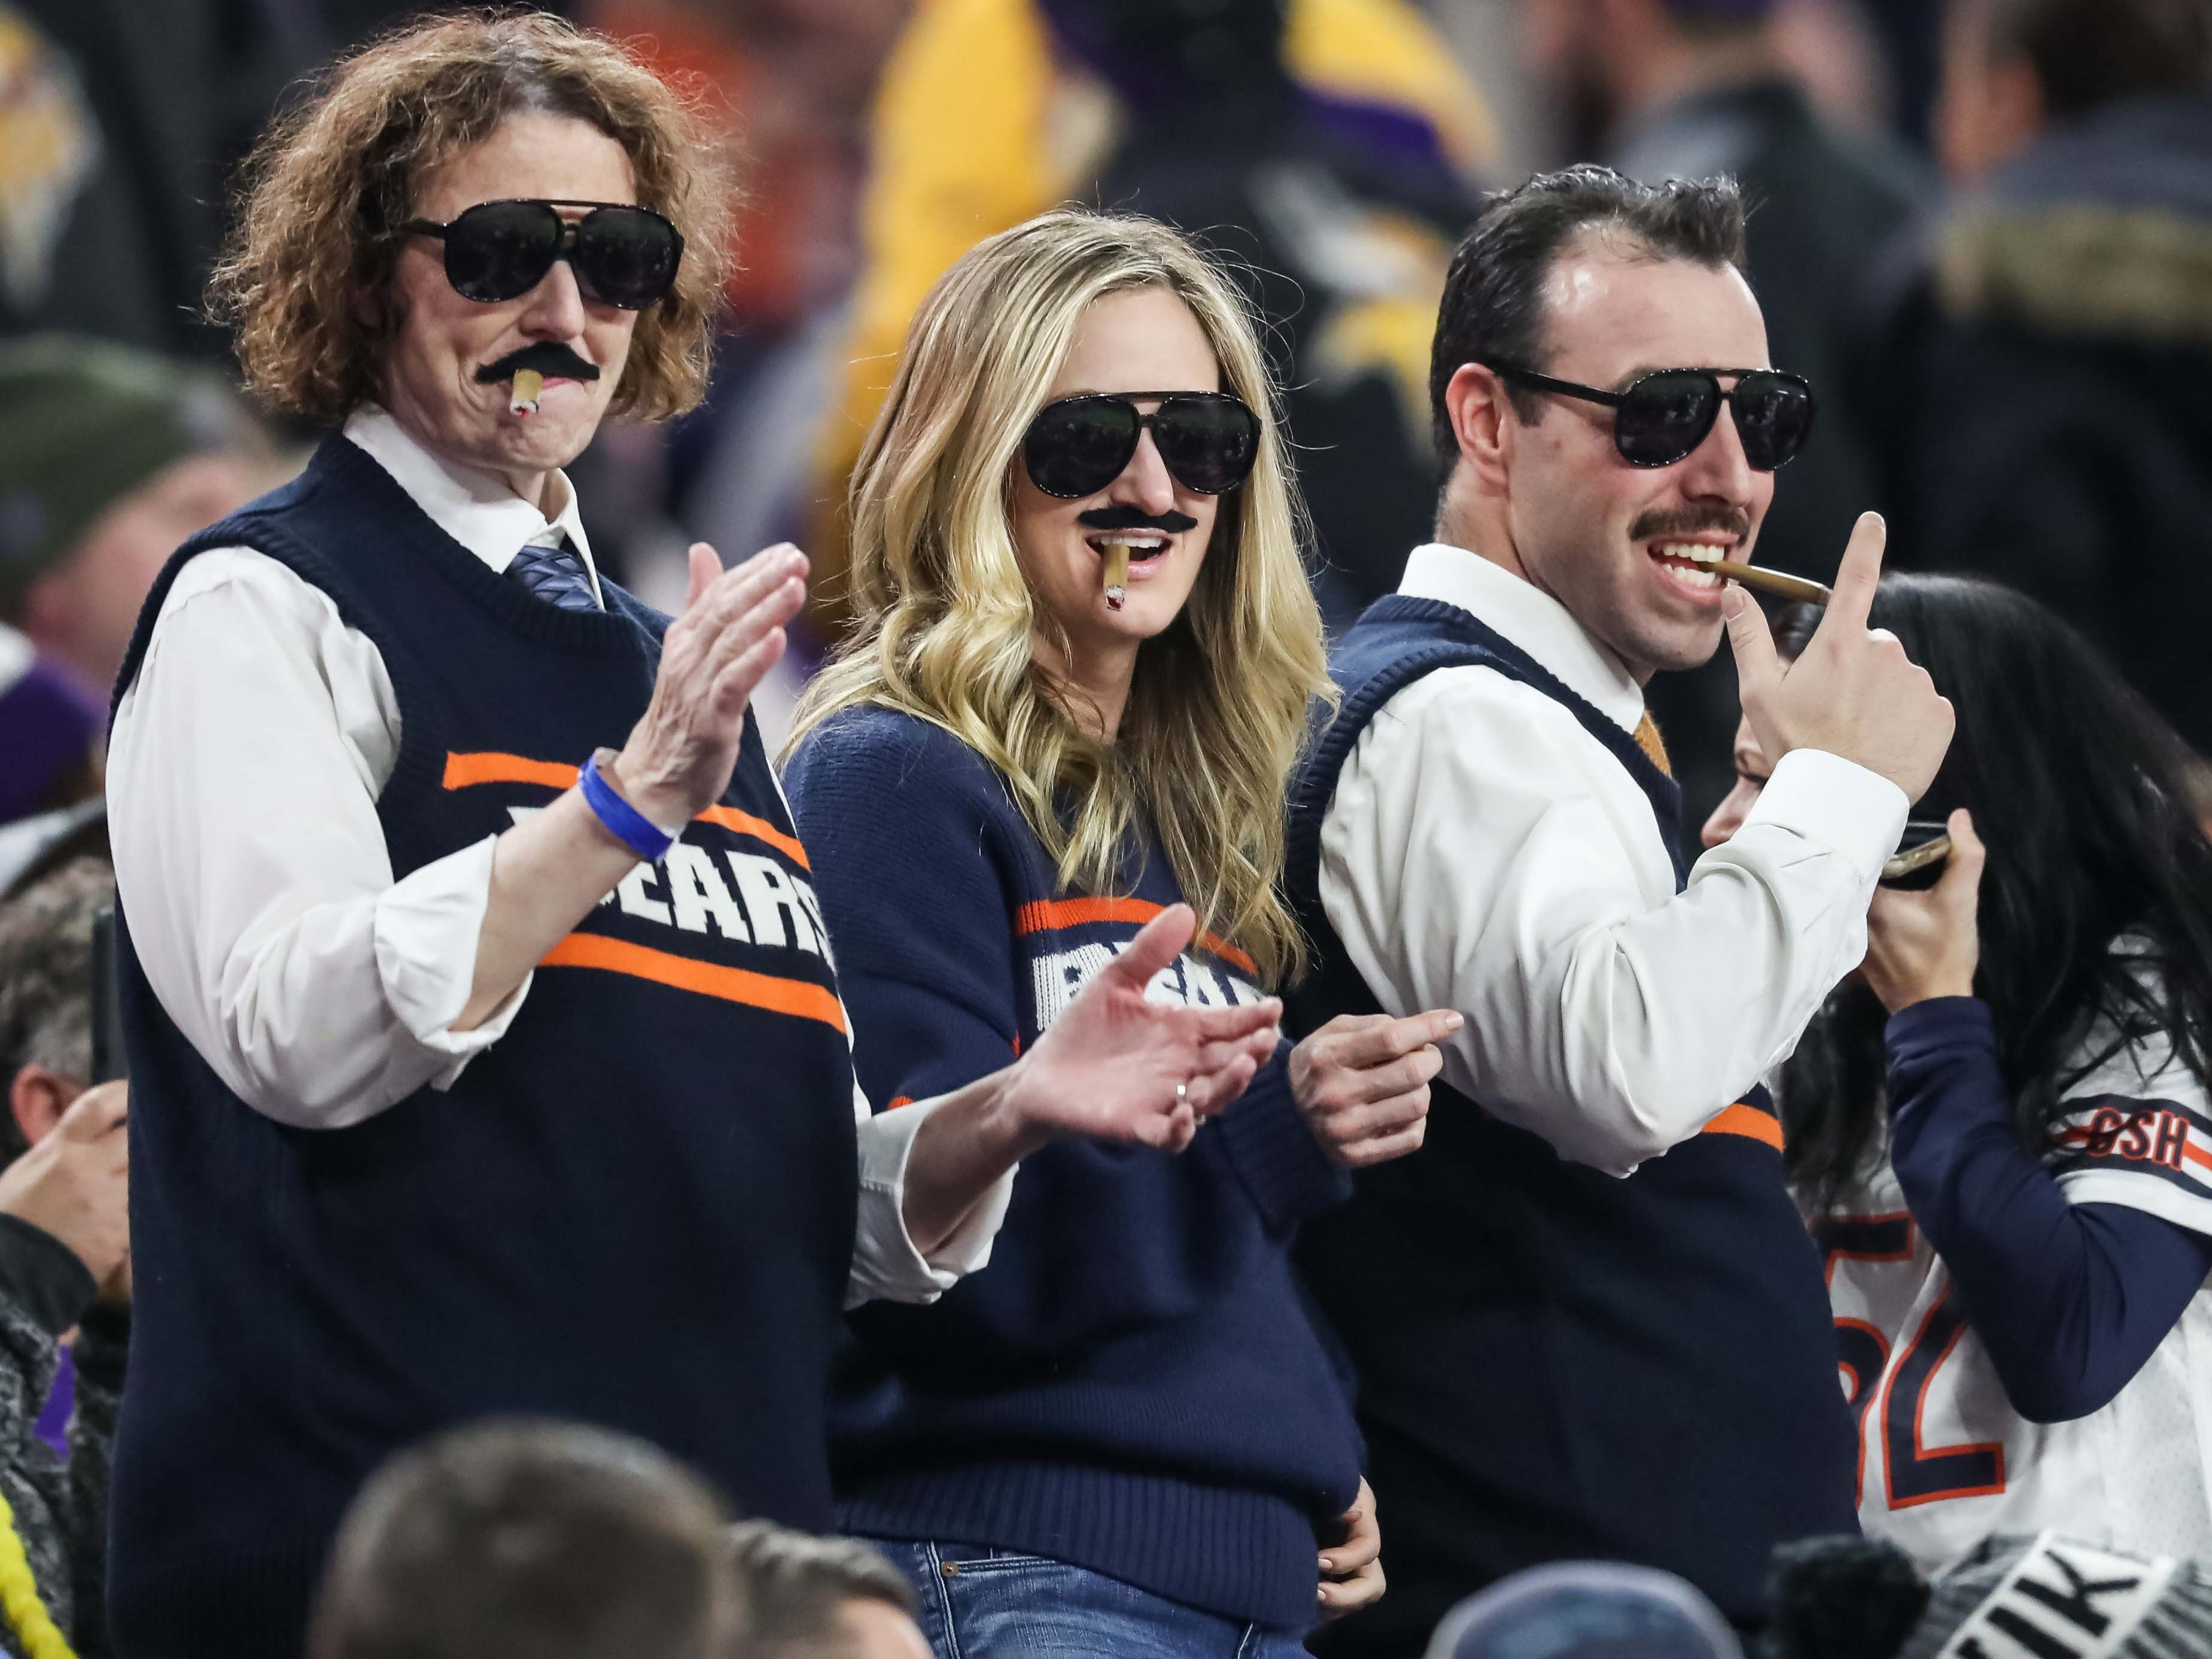 Chicago Bears fans celebrate during the fourth quarter against the Minnesota Vikings at U.S. Bank Stadium.